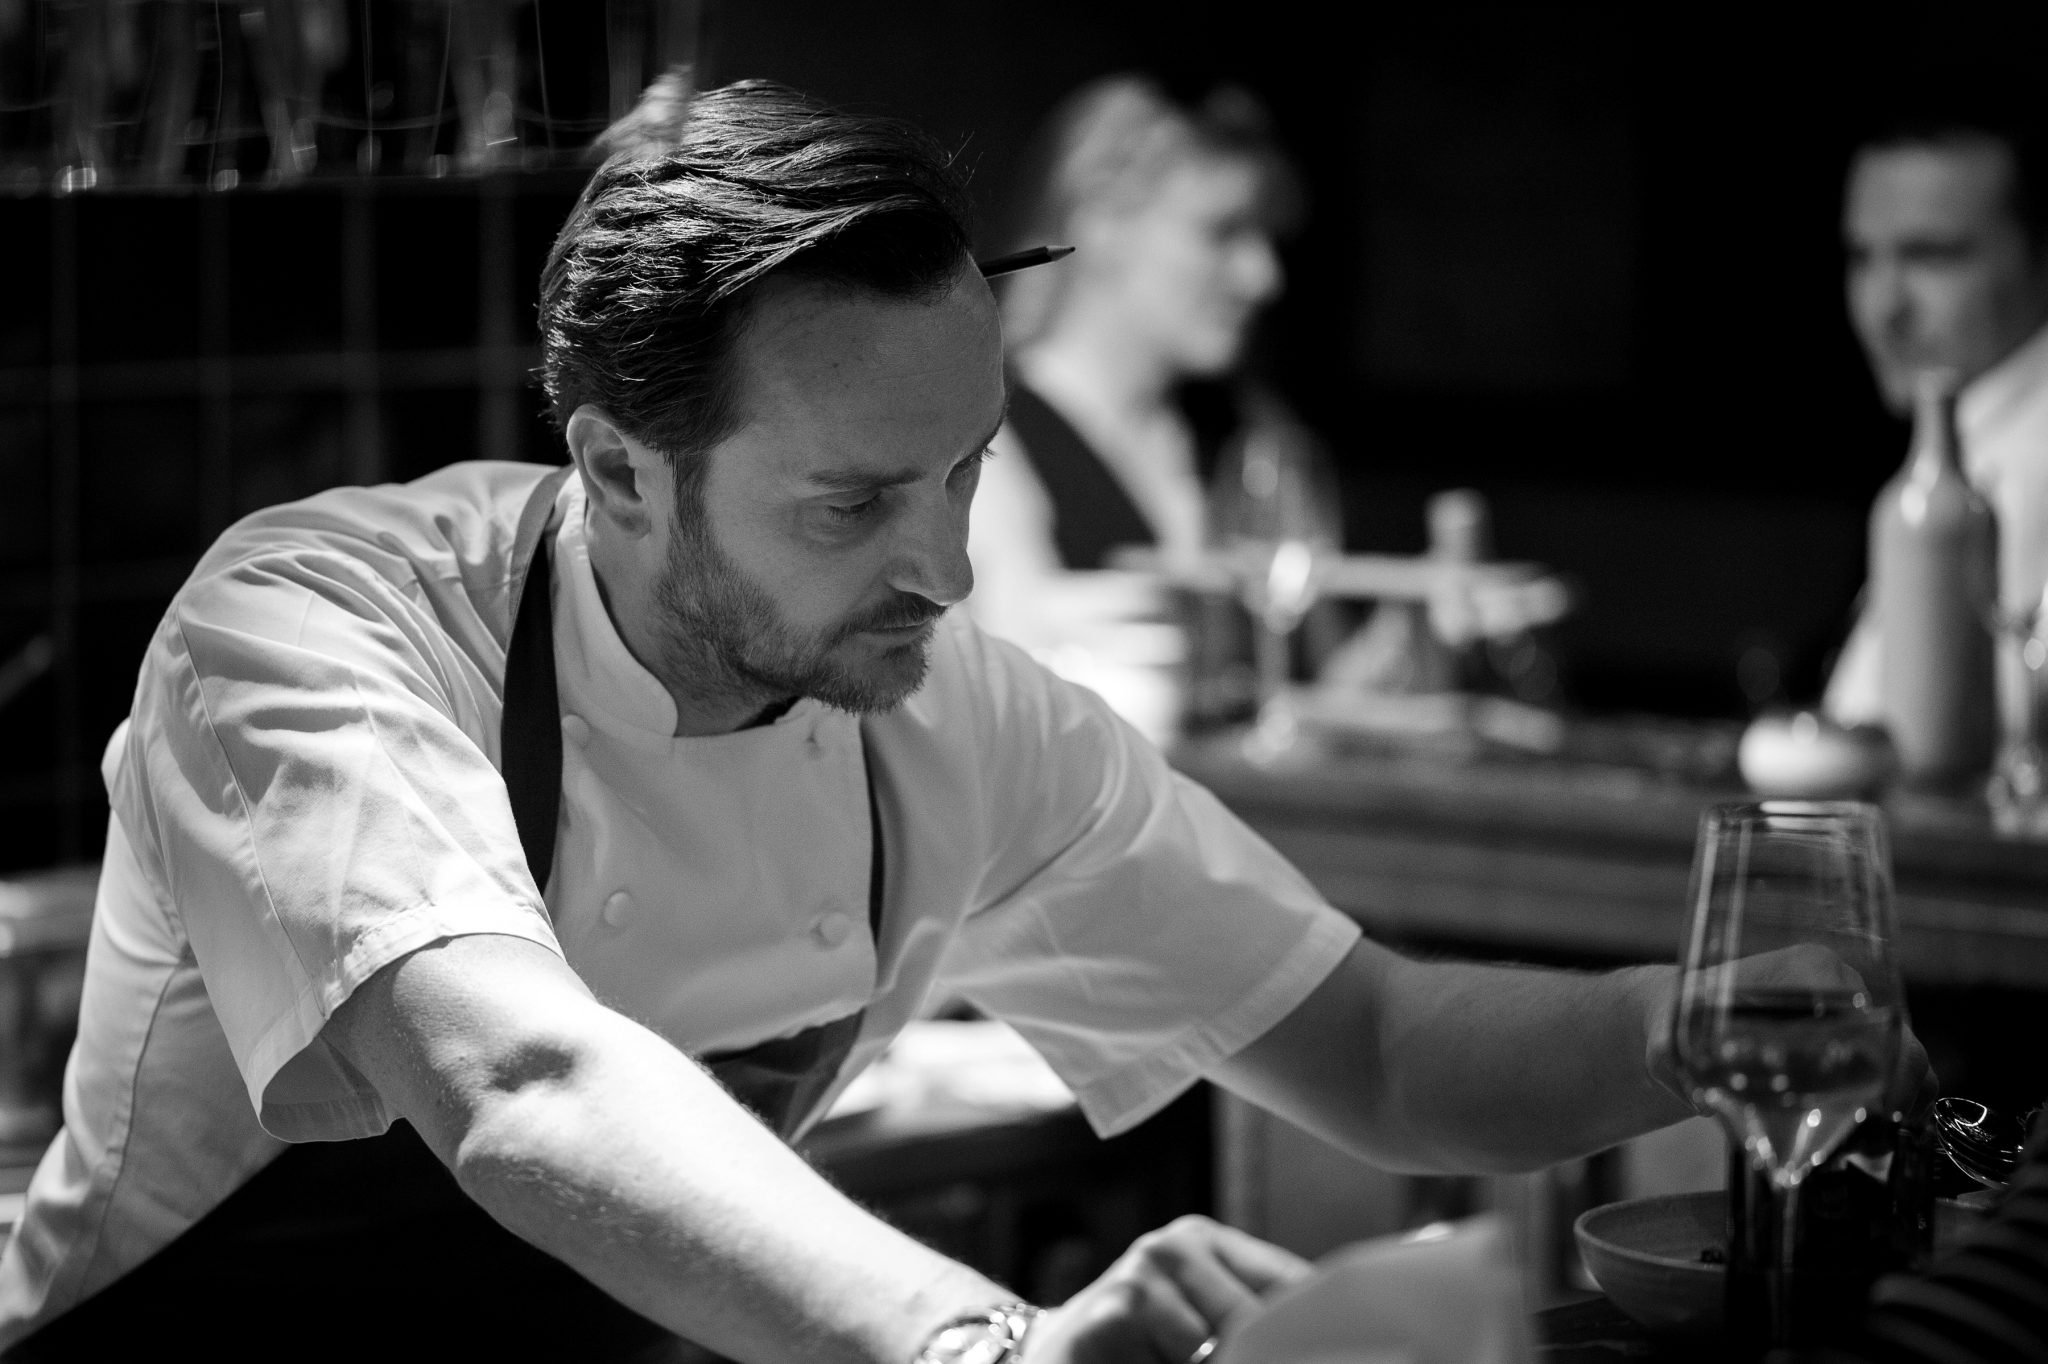 Top Cooking Tips From Jason Atherton